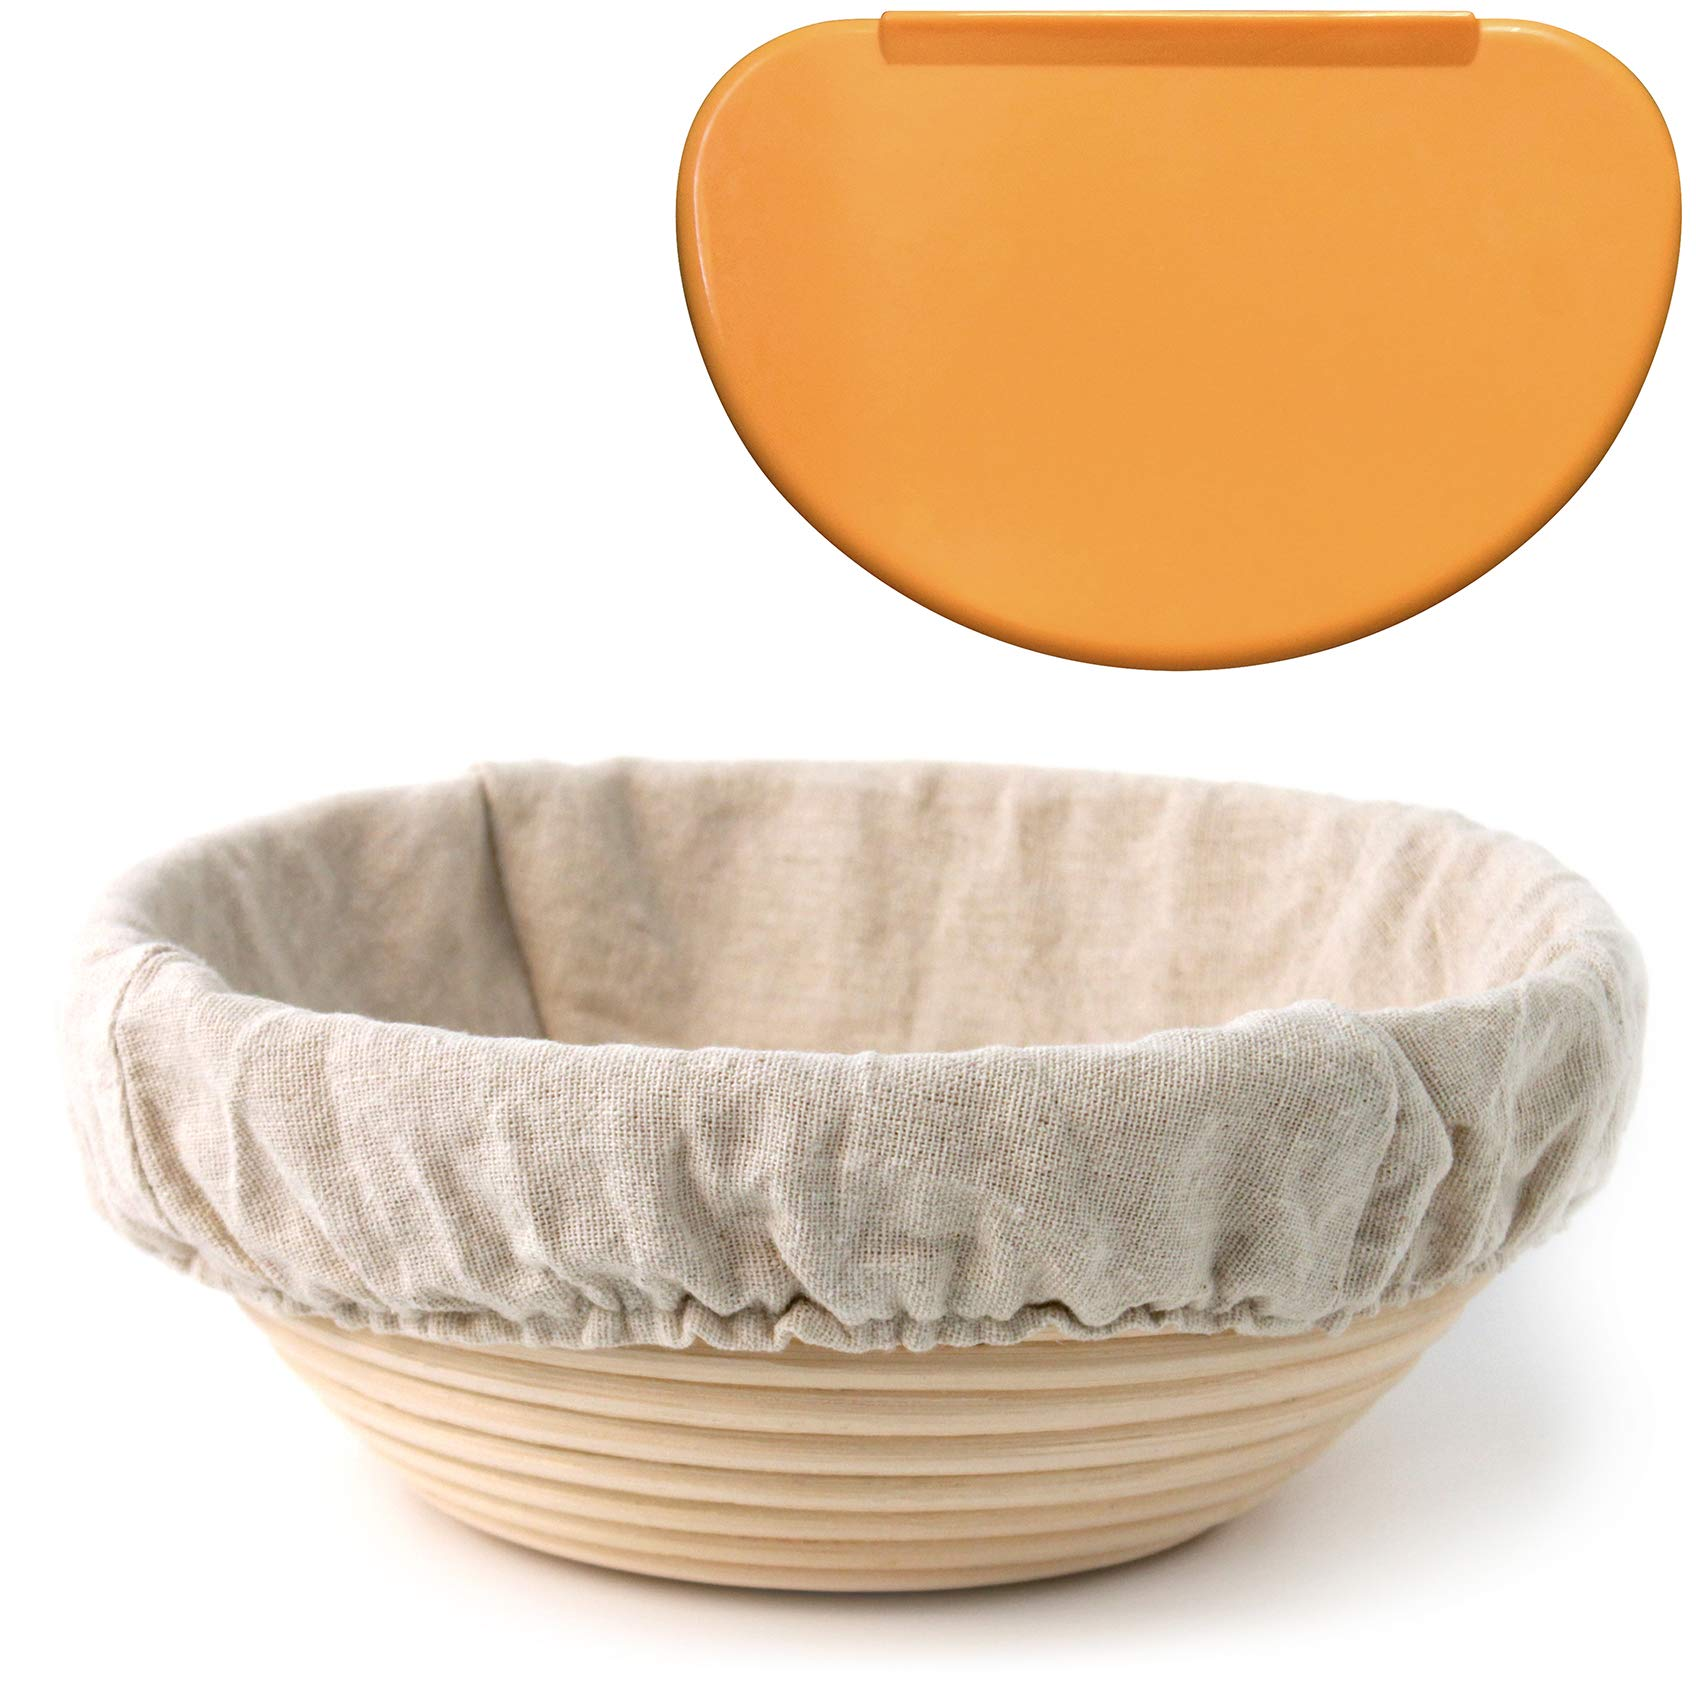 Banneton Proofing Basket 8.5'' Round – with Brotform Cloth Liner for Starter Rising Dough & Flexible Bowl Scraper for Shaping Sourdough Loaf | Artisan Bread Baking Supplies by Indigo True Company